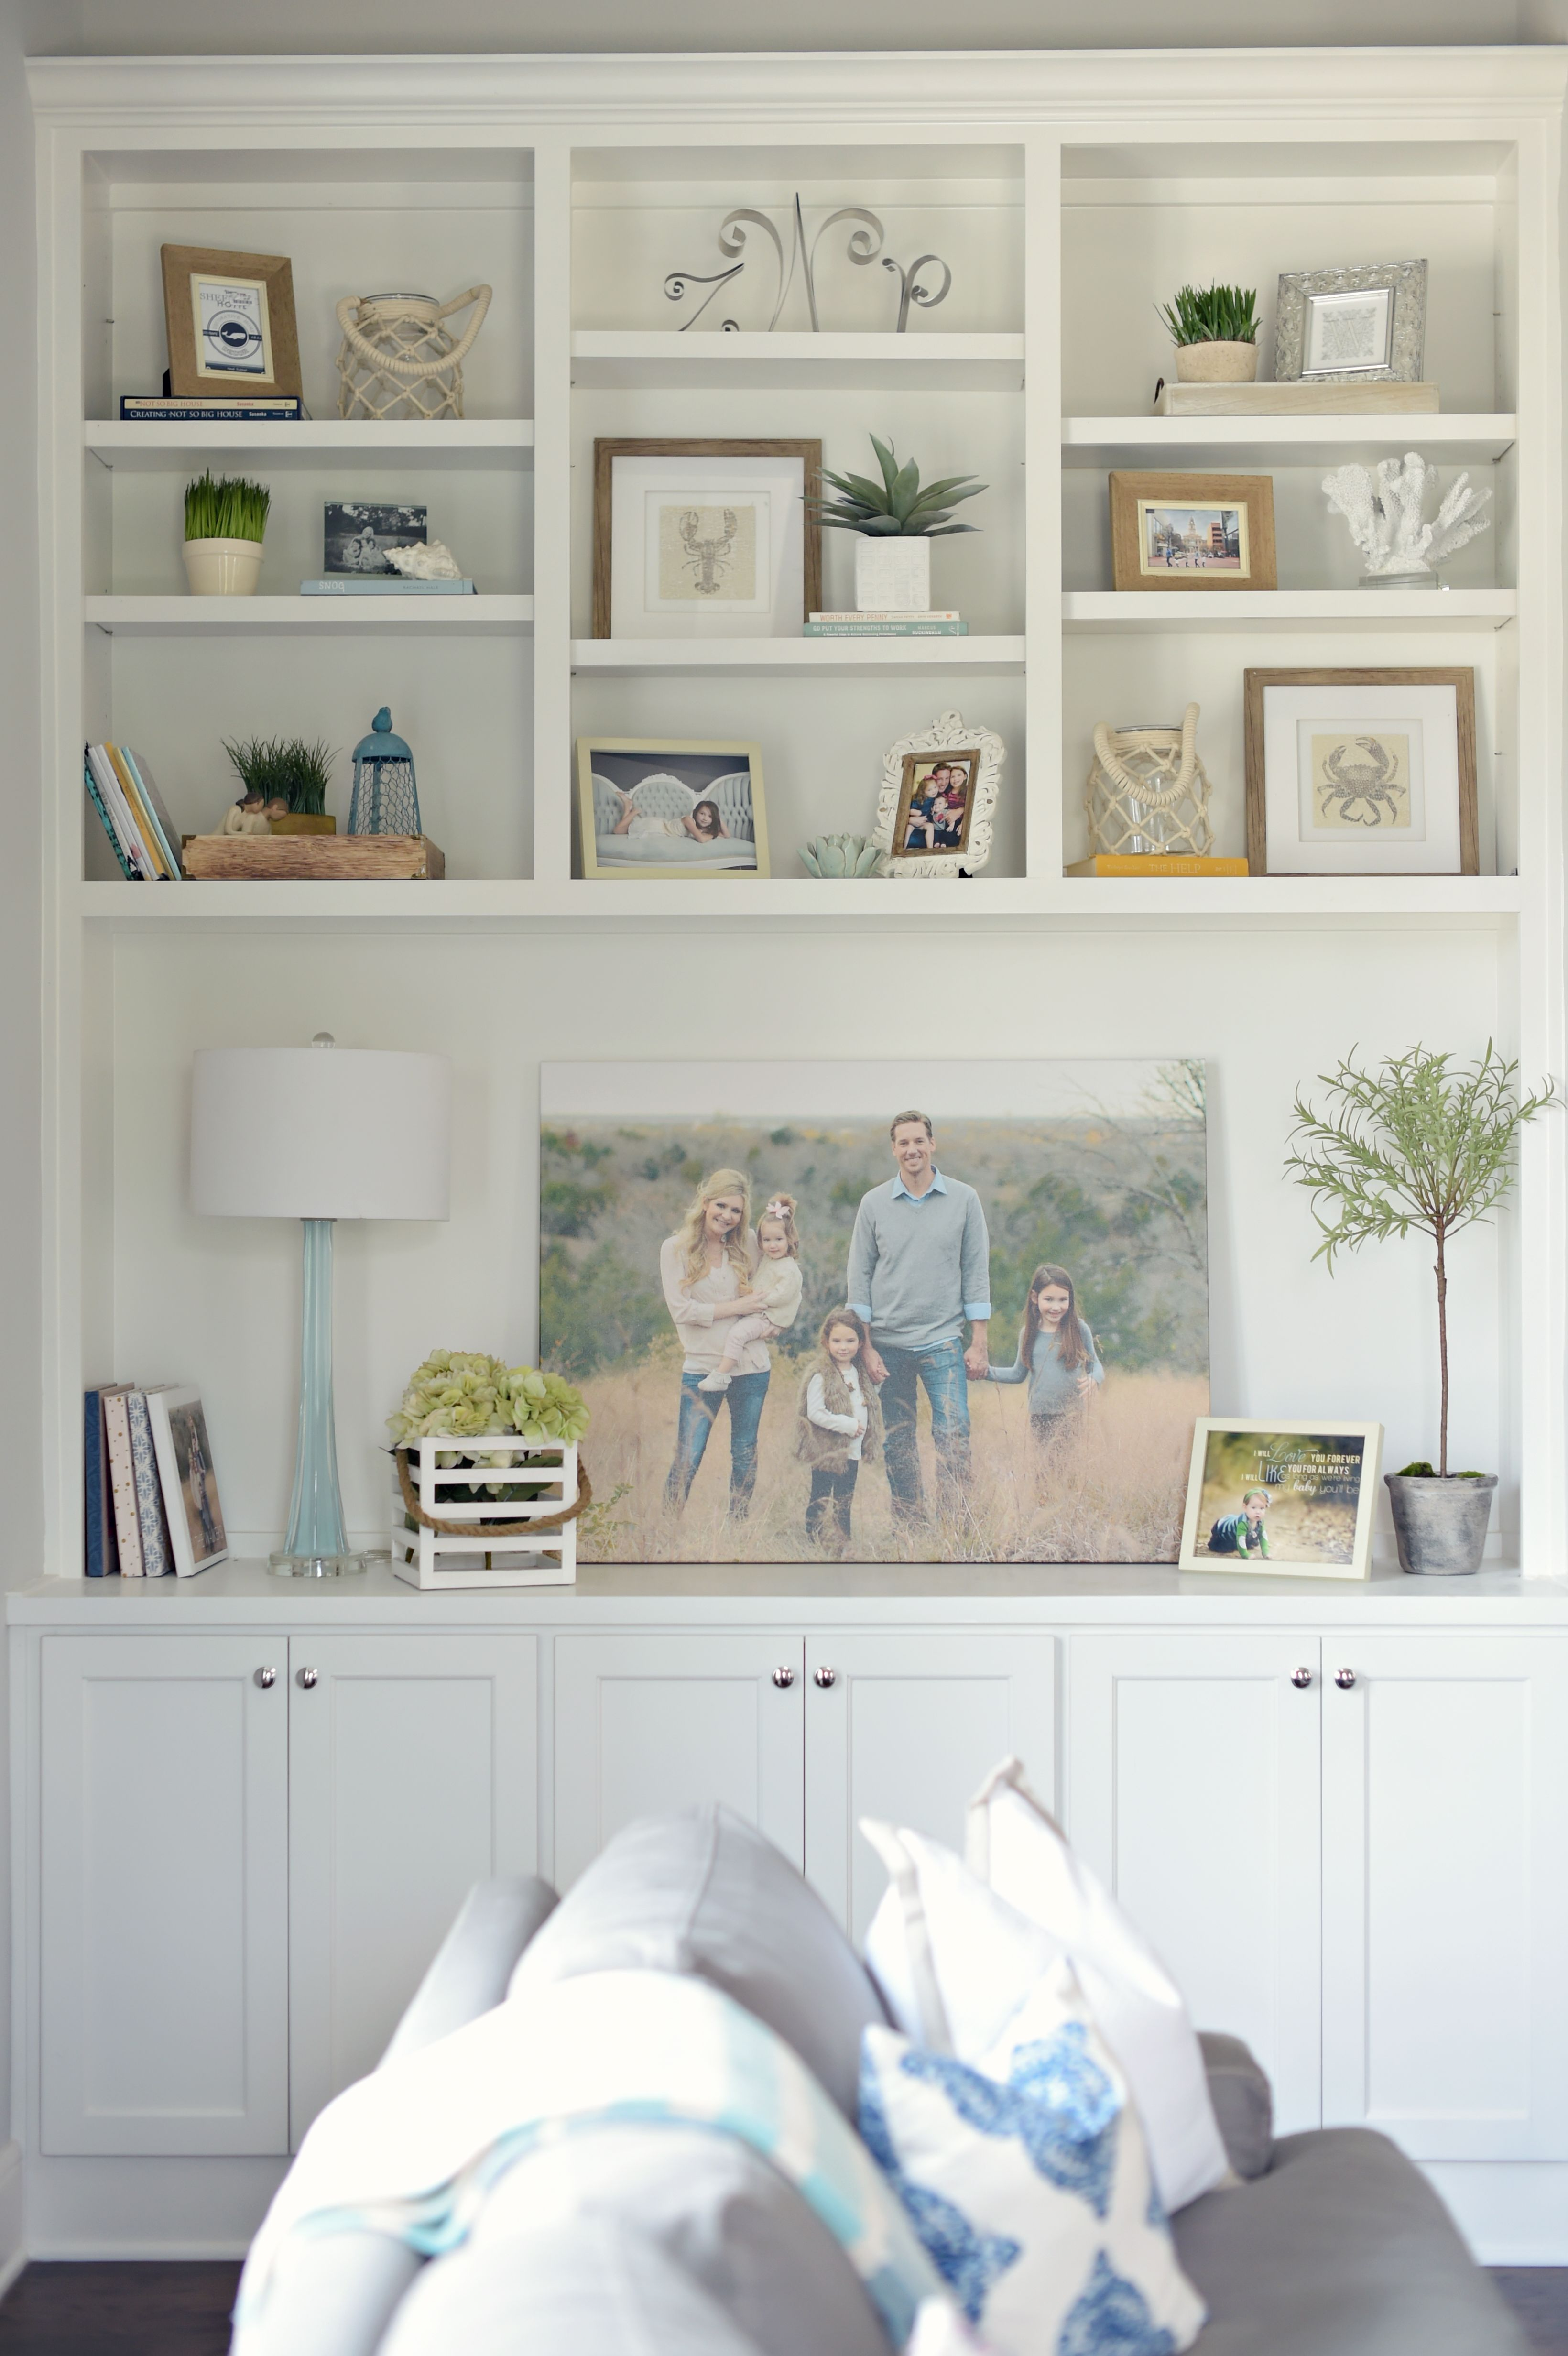 Bookcase Cabinets Living Room Teal Accessories Bookshelf Styling Dayme Walther Love This Look Pinterest Shelving In Wall Decorating